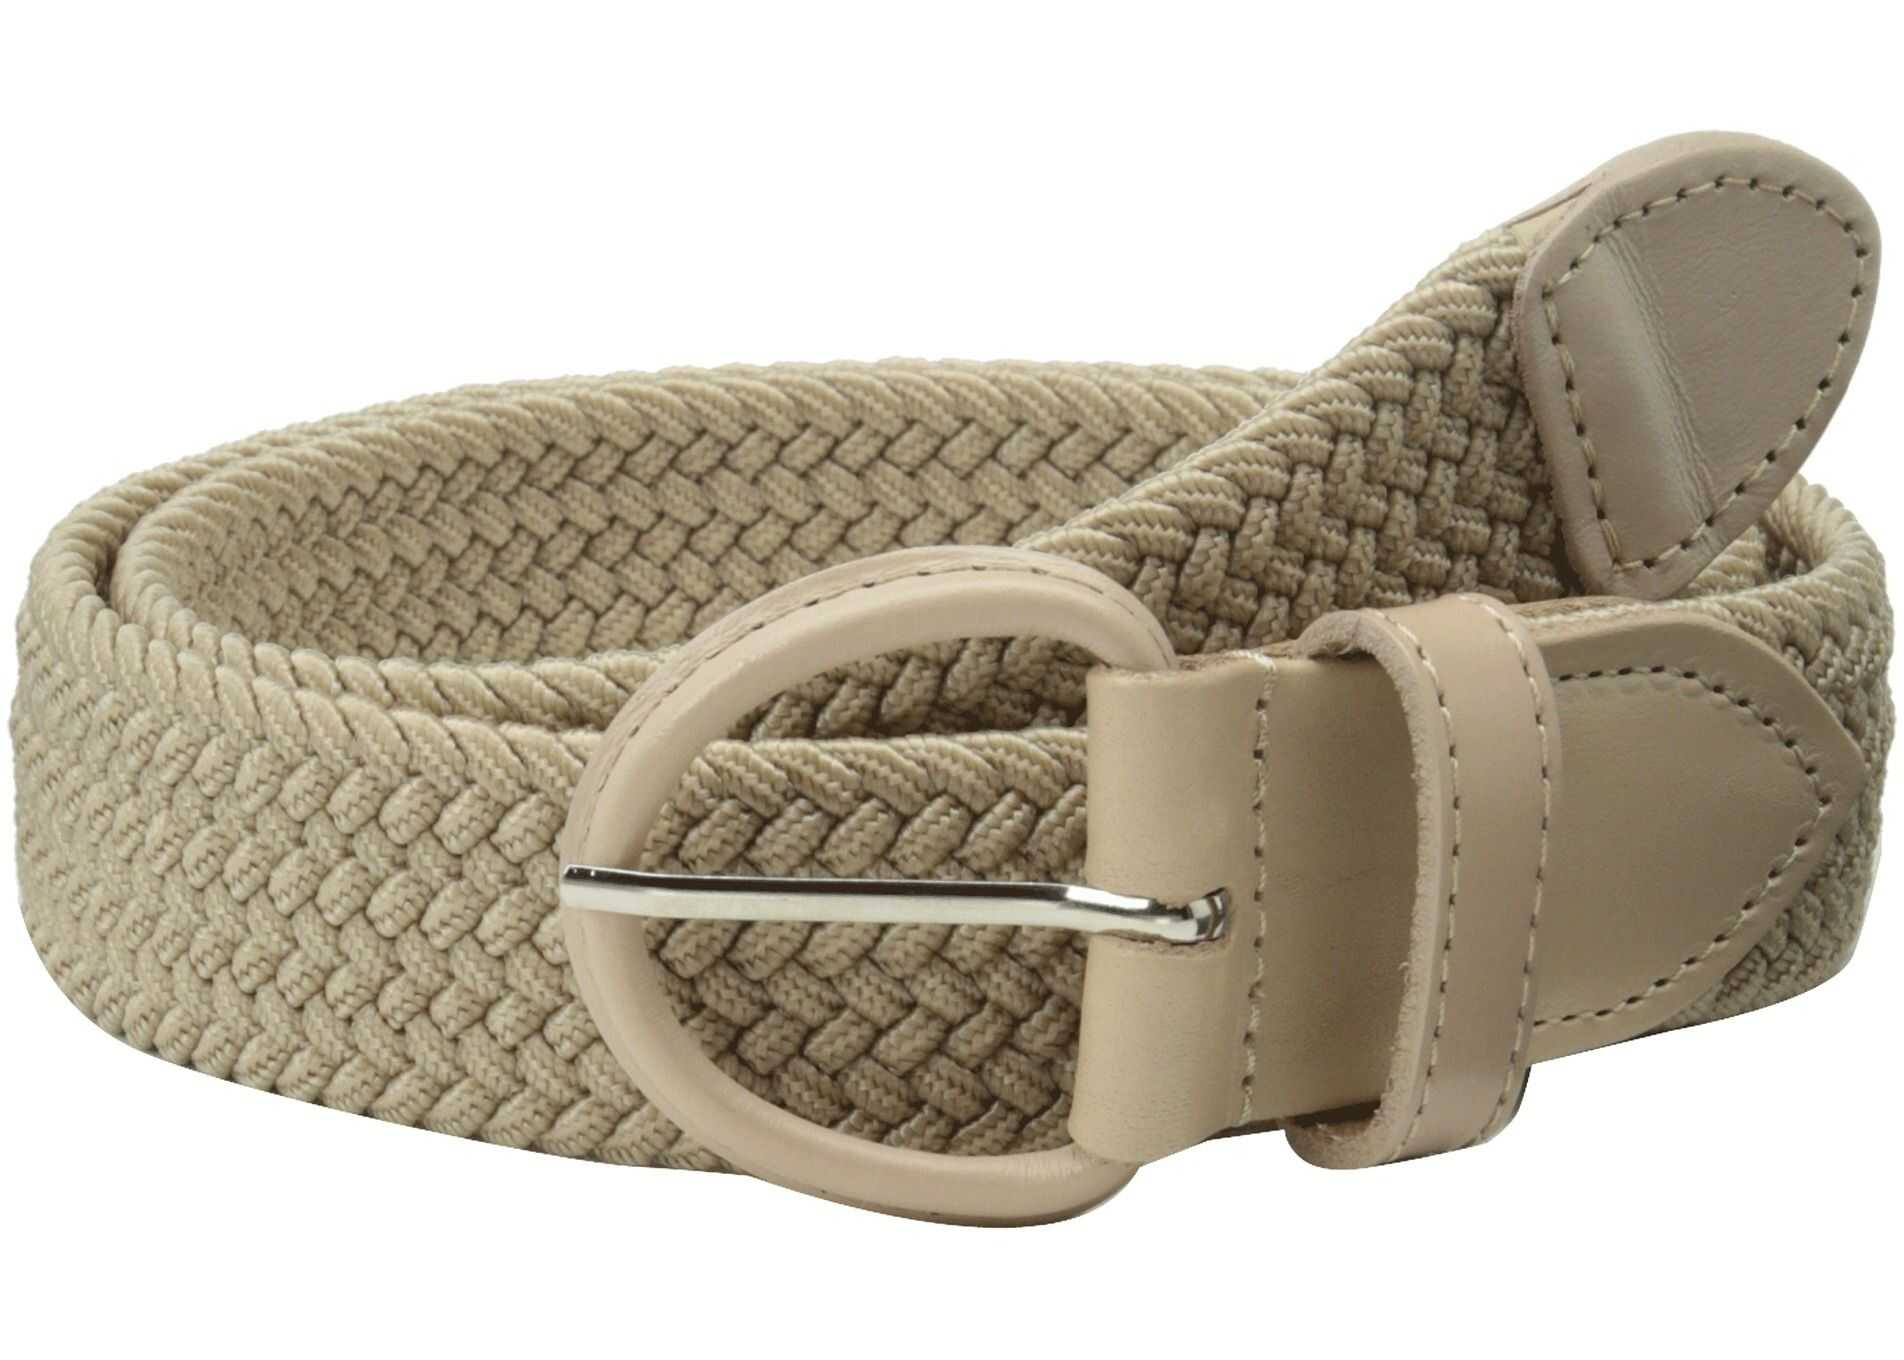 Florsheim Braided Elastic Stretch Belt 35mm Khaki